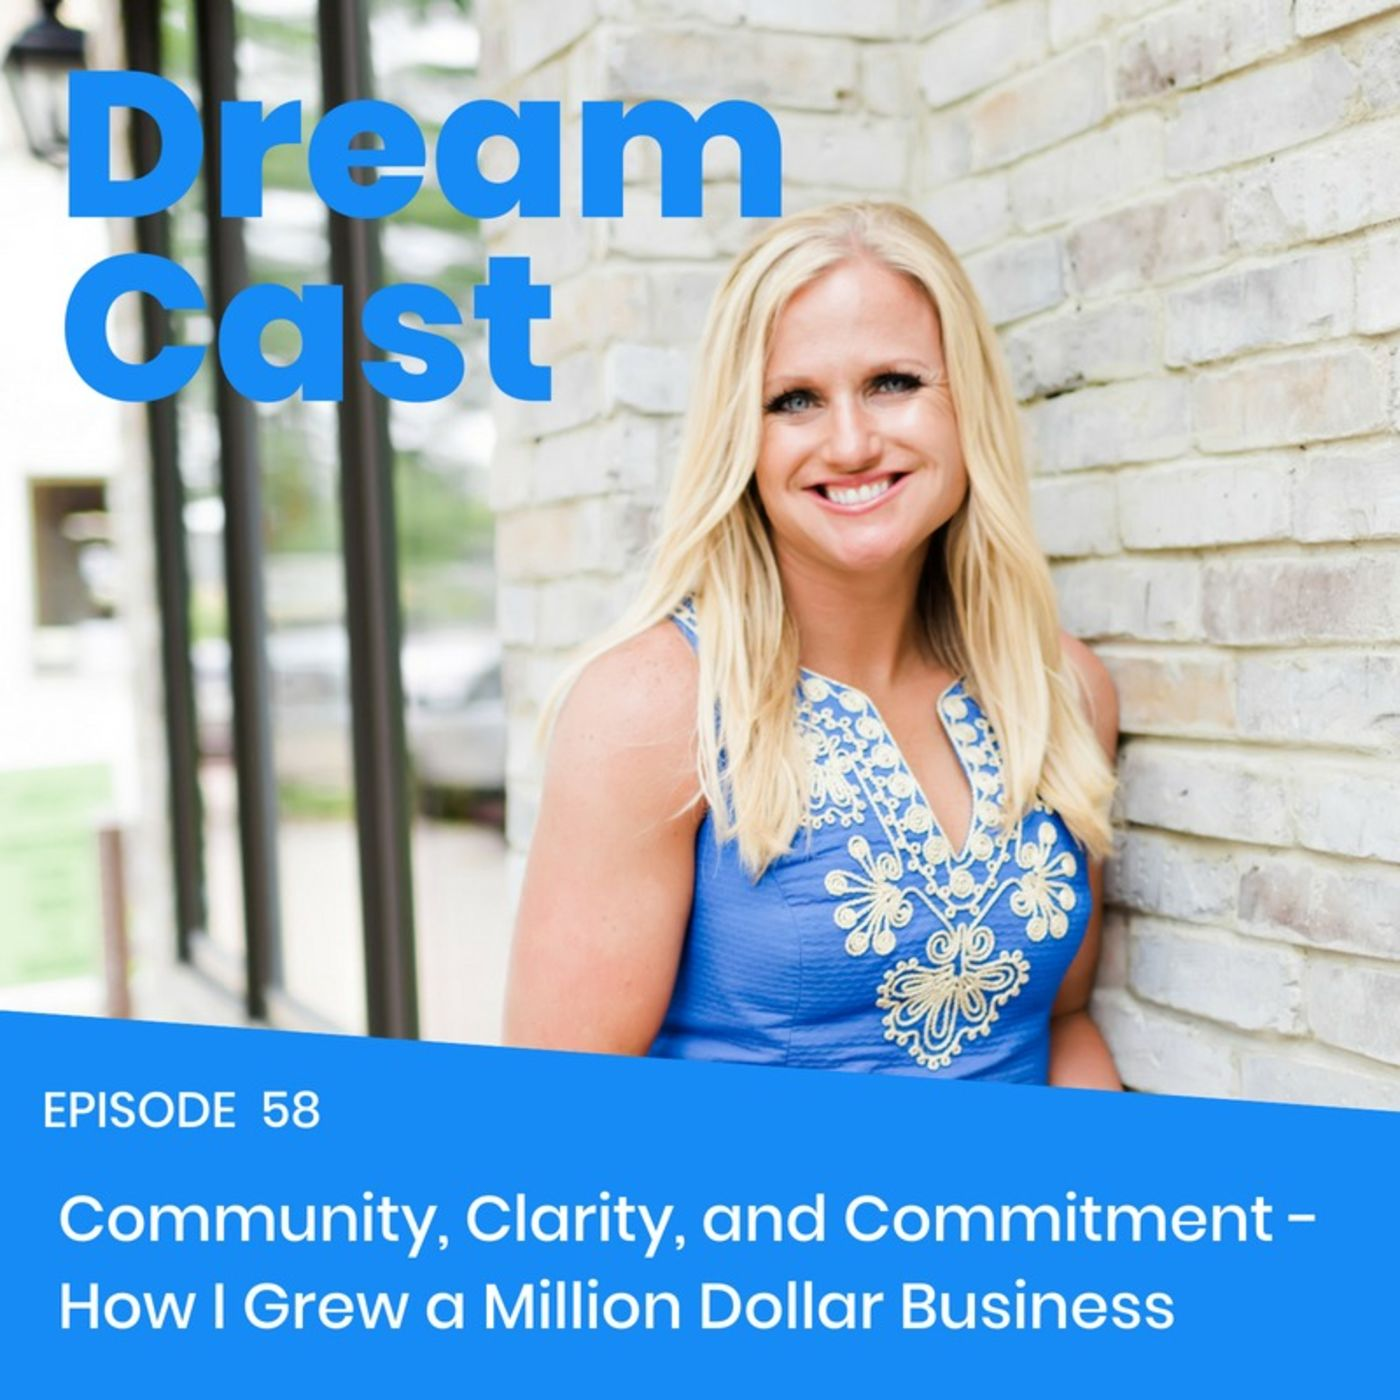 Episode 58 - REPLAY FRIDAY: Community, Clarity, and Commitment - How I Grew a Million Dollar Business